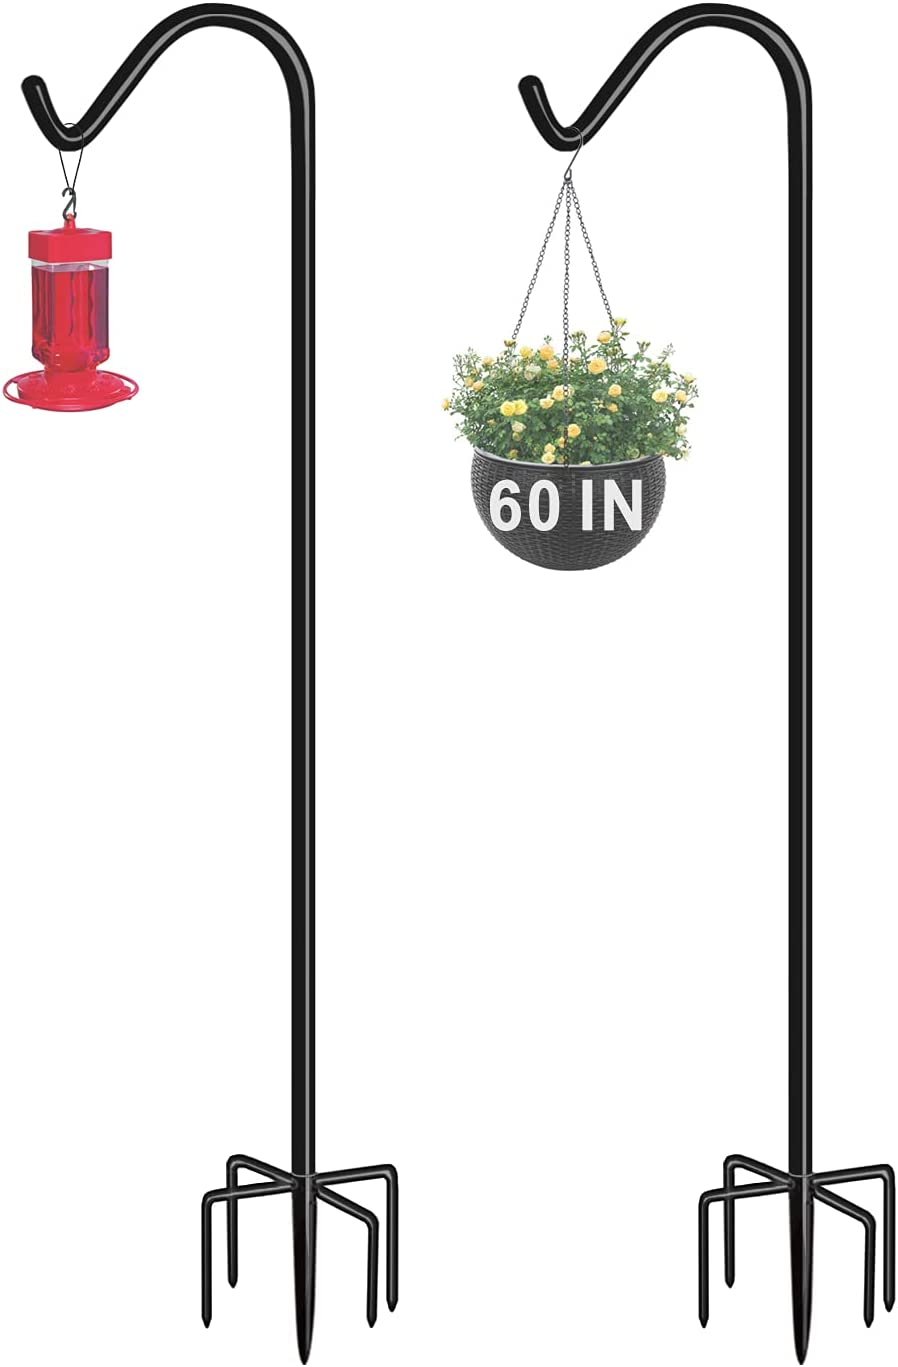 Eazielife Shepherds Hook for Outdoor Bird Feeders 60 Inch Tall, Adjustable Heavy Duty Garden Hanger Stake Pole with 5 Prong Base, Shiny Black (2 Packs)